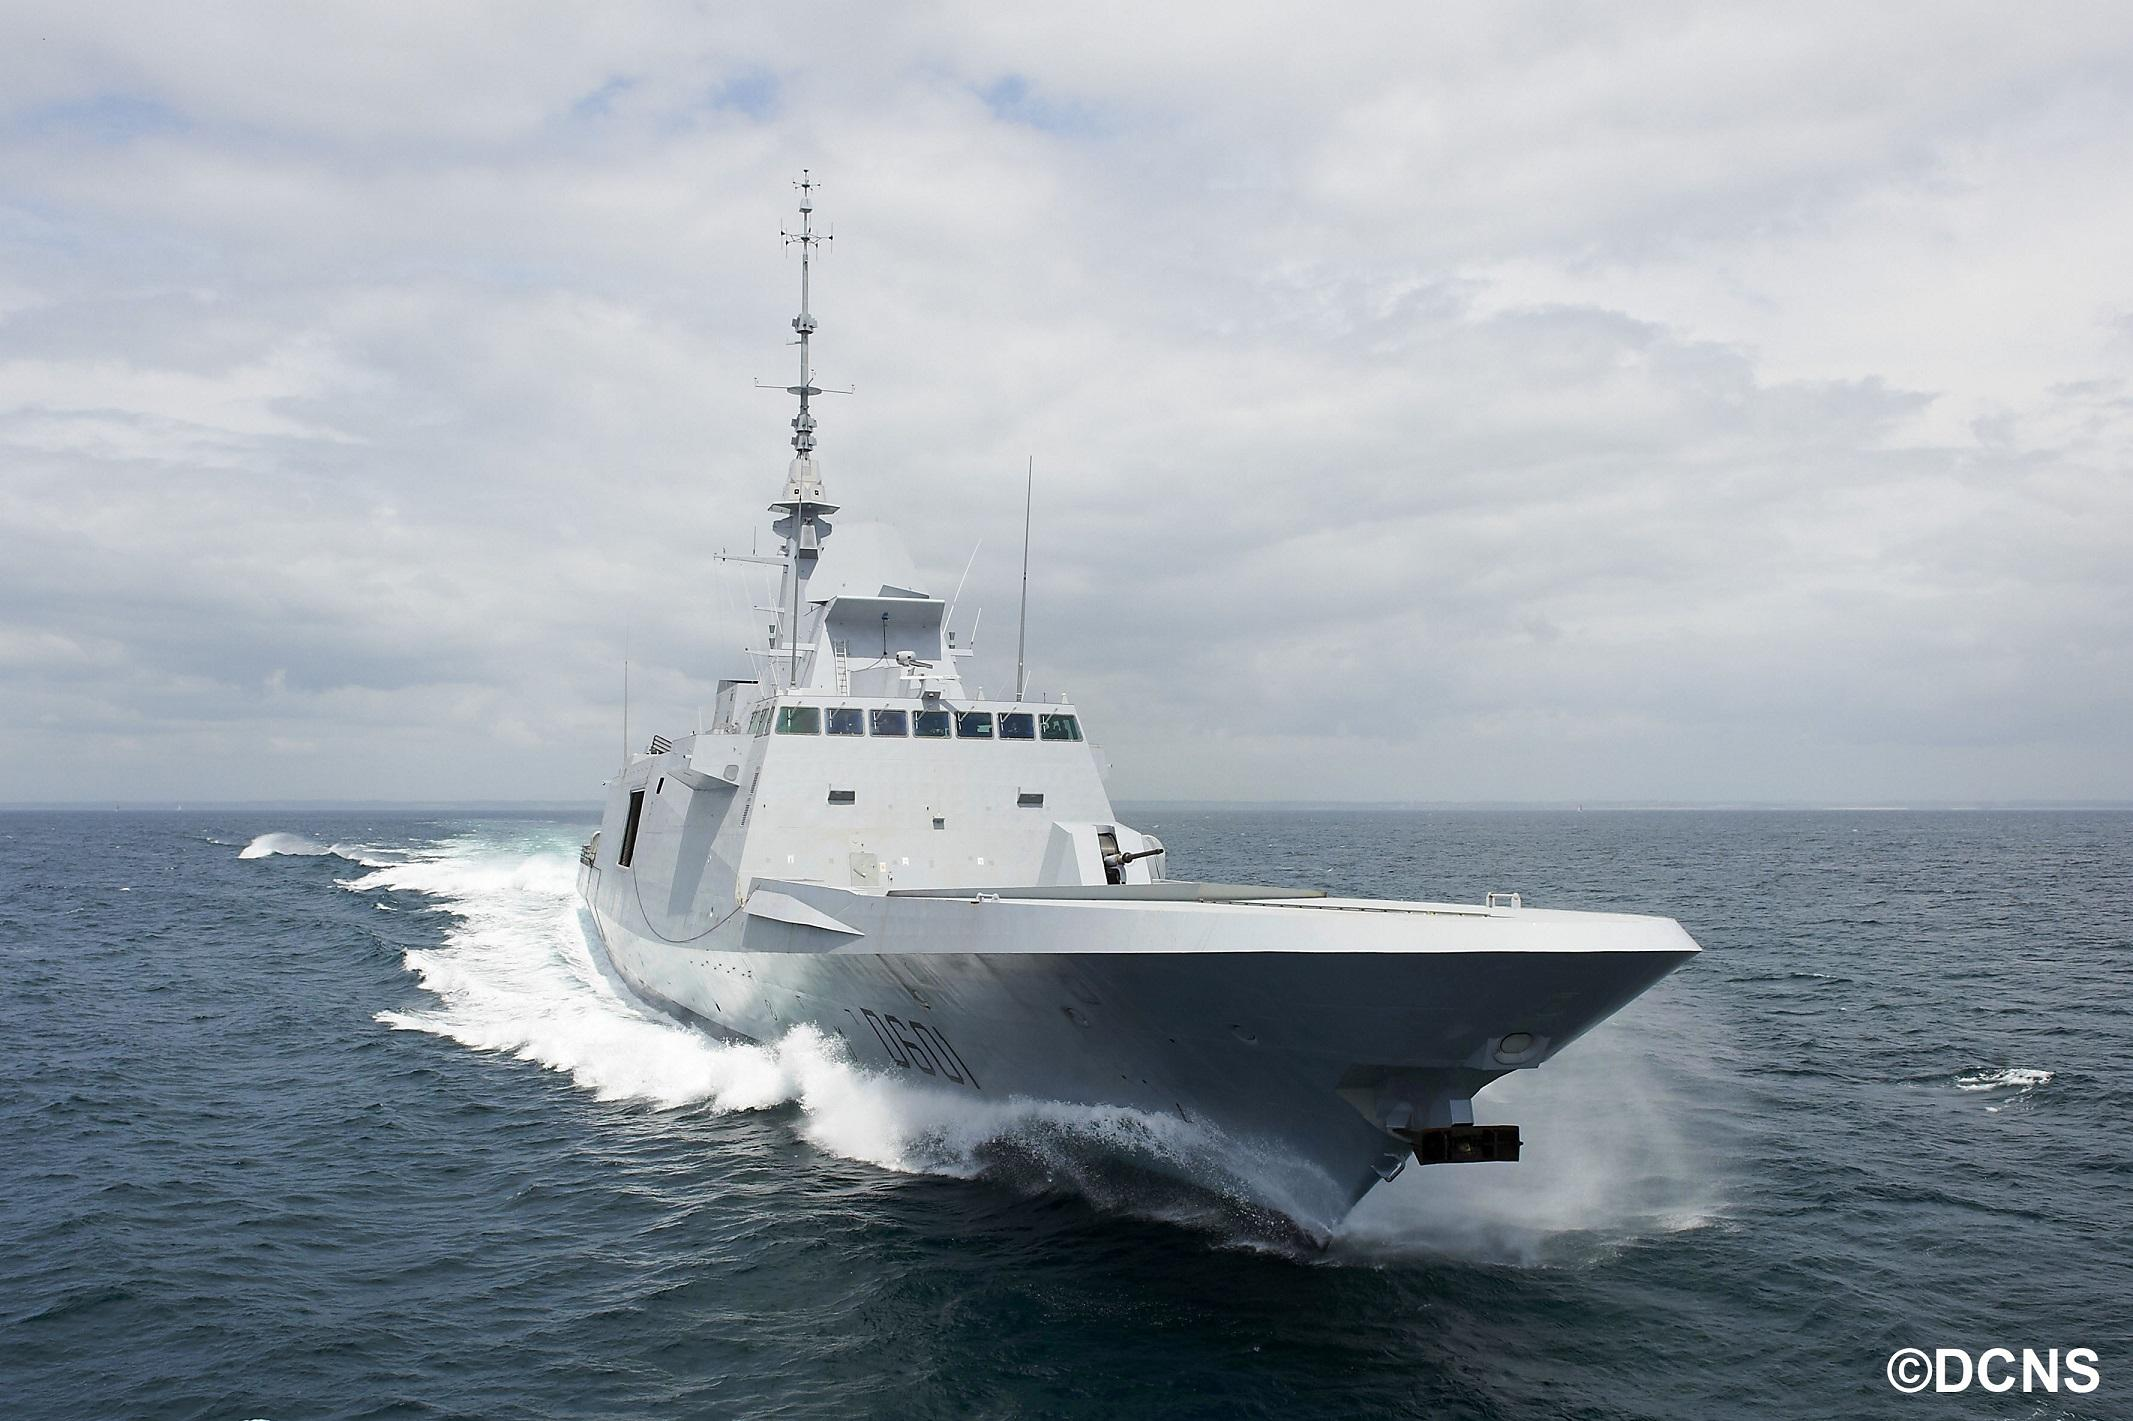 Thales equipped the FREMM frigate with communication systems and a sonar suite  - Thalesgroup